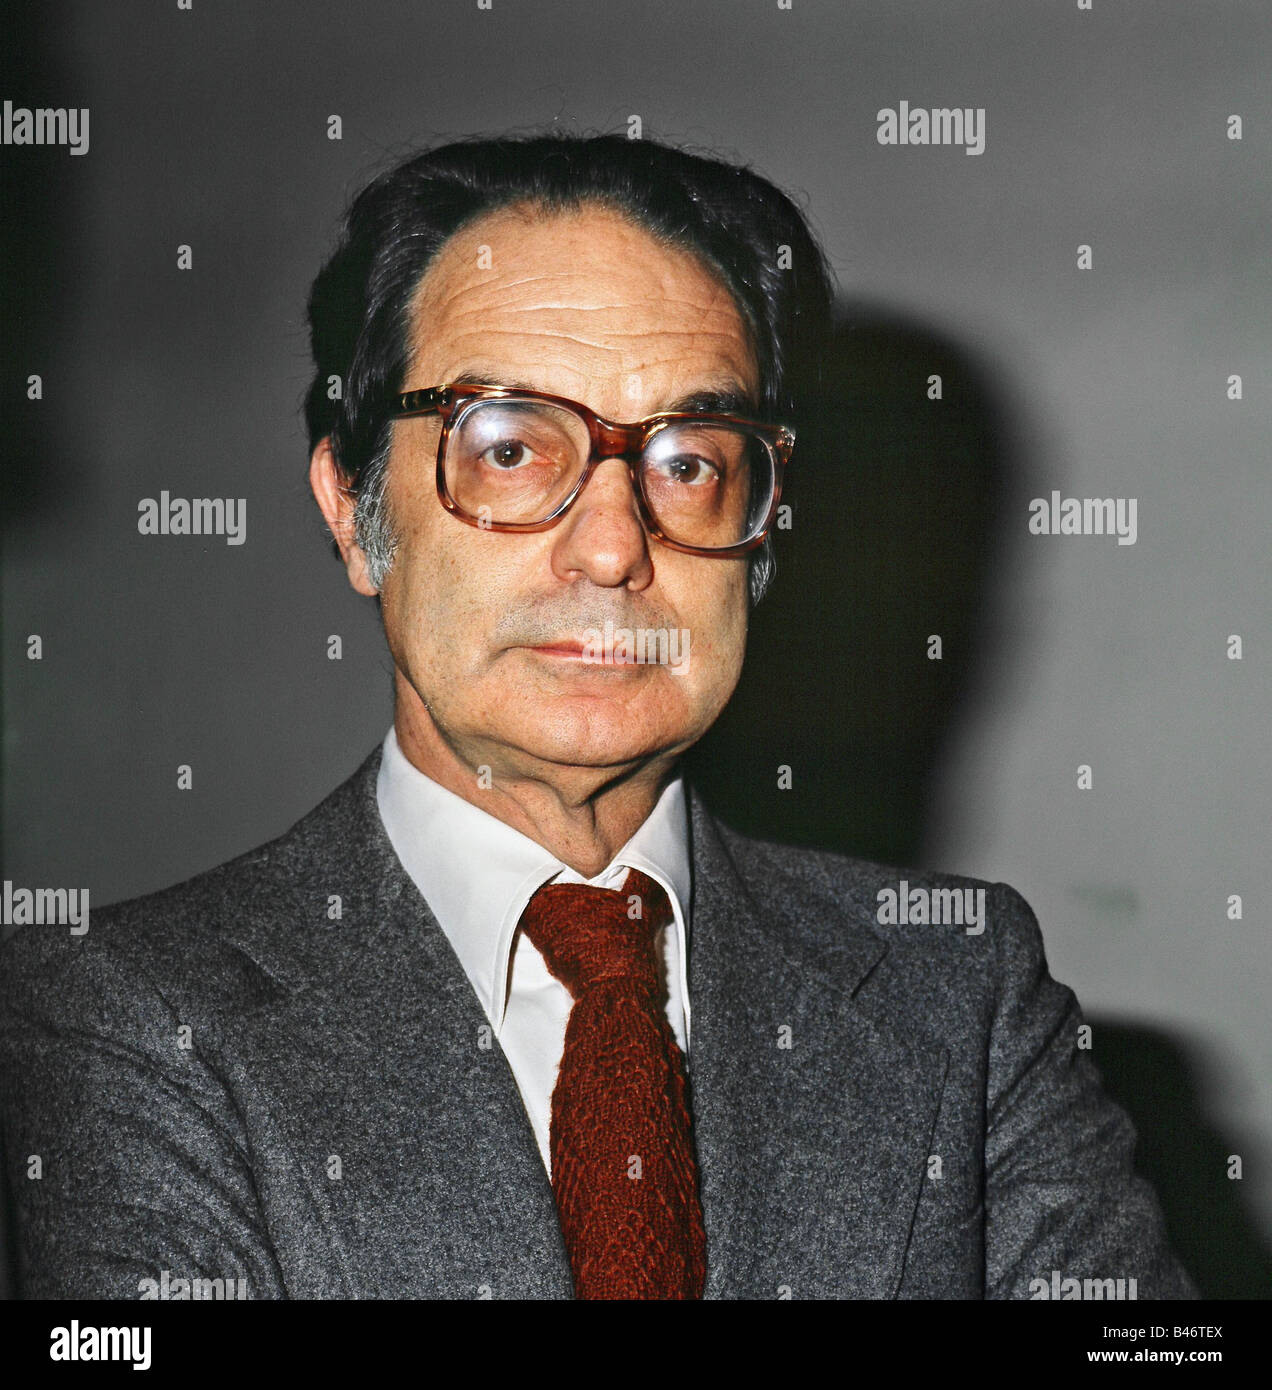 italo calvinos nonexistent knight essay He is the author of numerous works of fiction, as well as essays, criticism, and  literary anthologies born in cuba in 1923, calvino was raised in italy, where he.